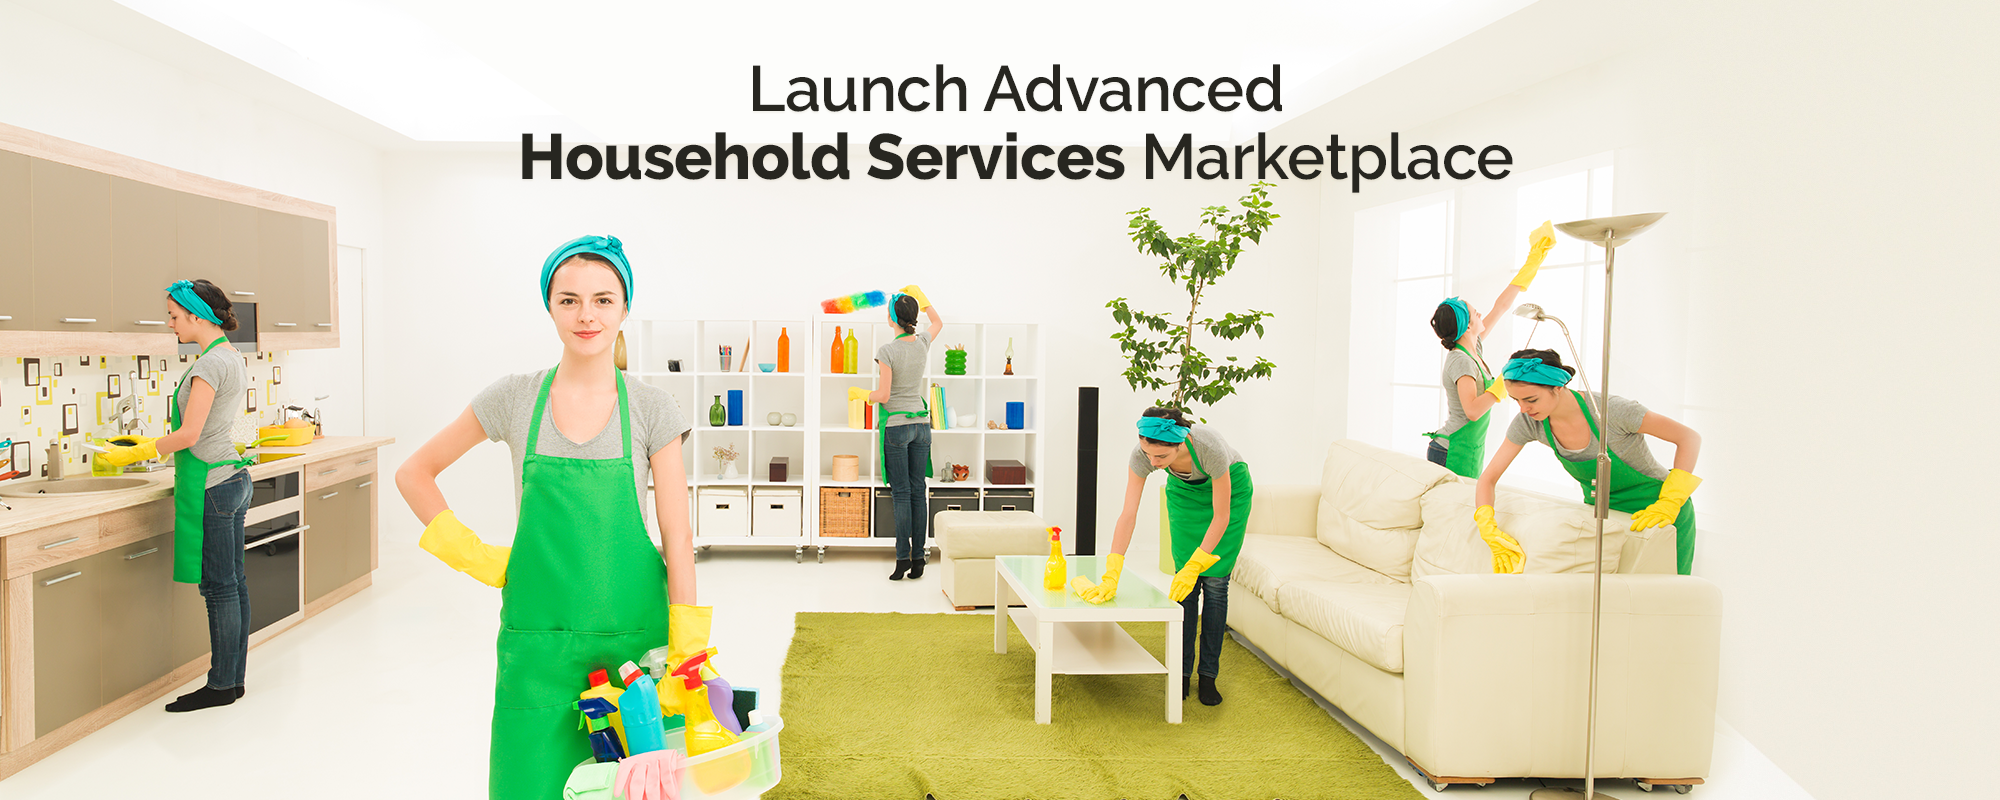 Script Features to Launch Advanced Household Services Marketplace